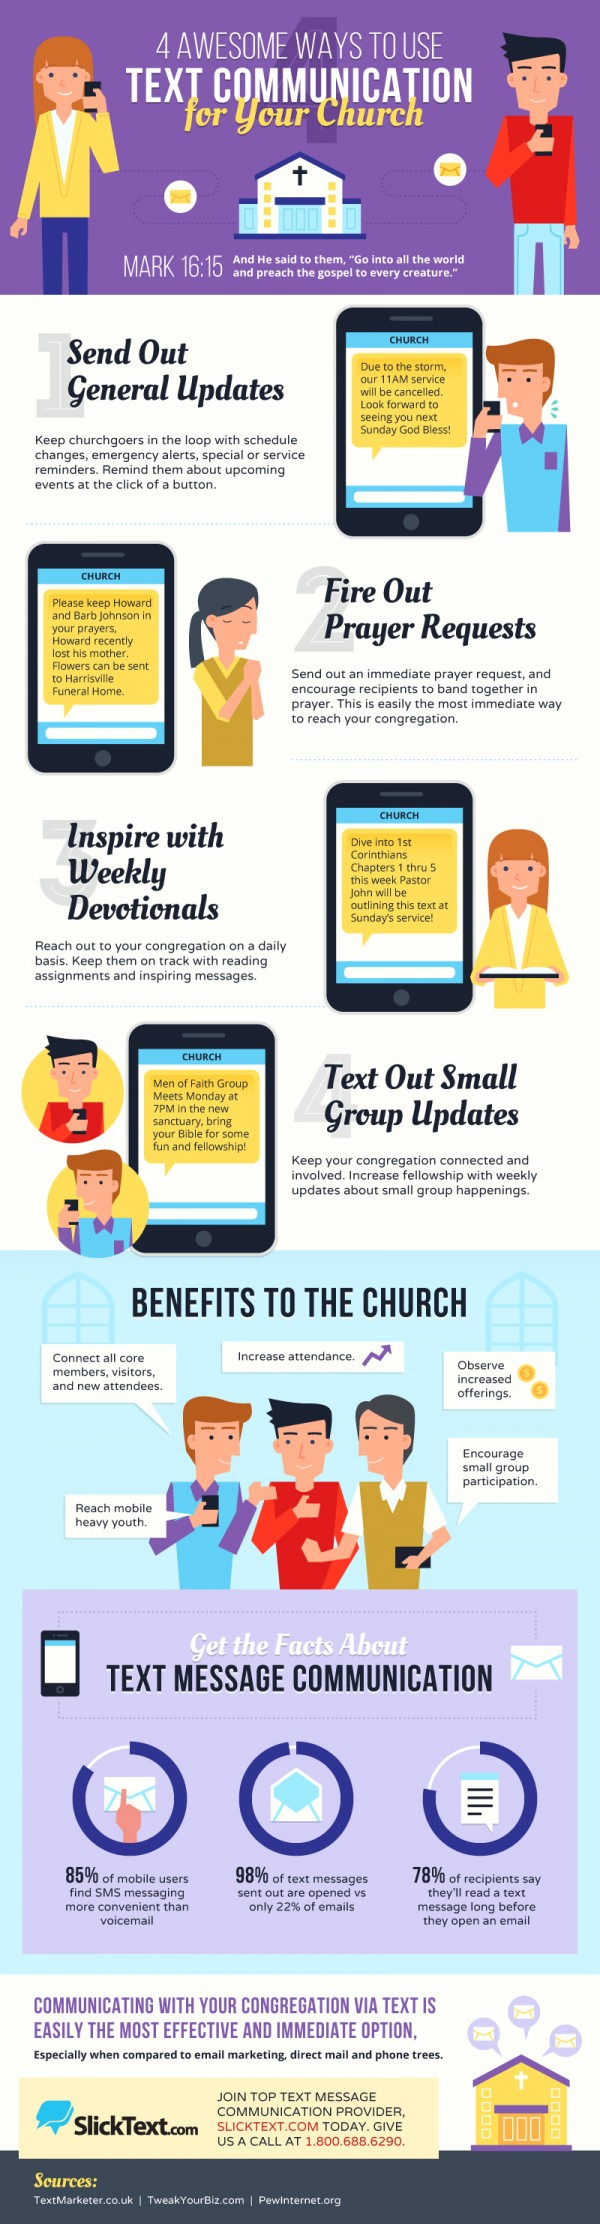 SMS Marketing Reviews Text-Communication-for-Your-Church-600x2224 How Churches Are Growing Using This Marketing Tool SMS For Business  text marketing reviewws sms marketing review slicktext review slicktext promo code